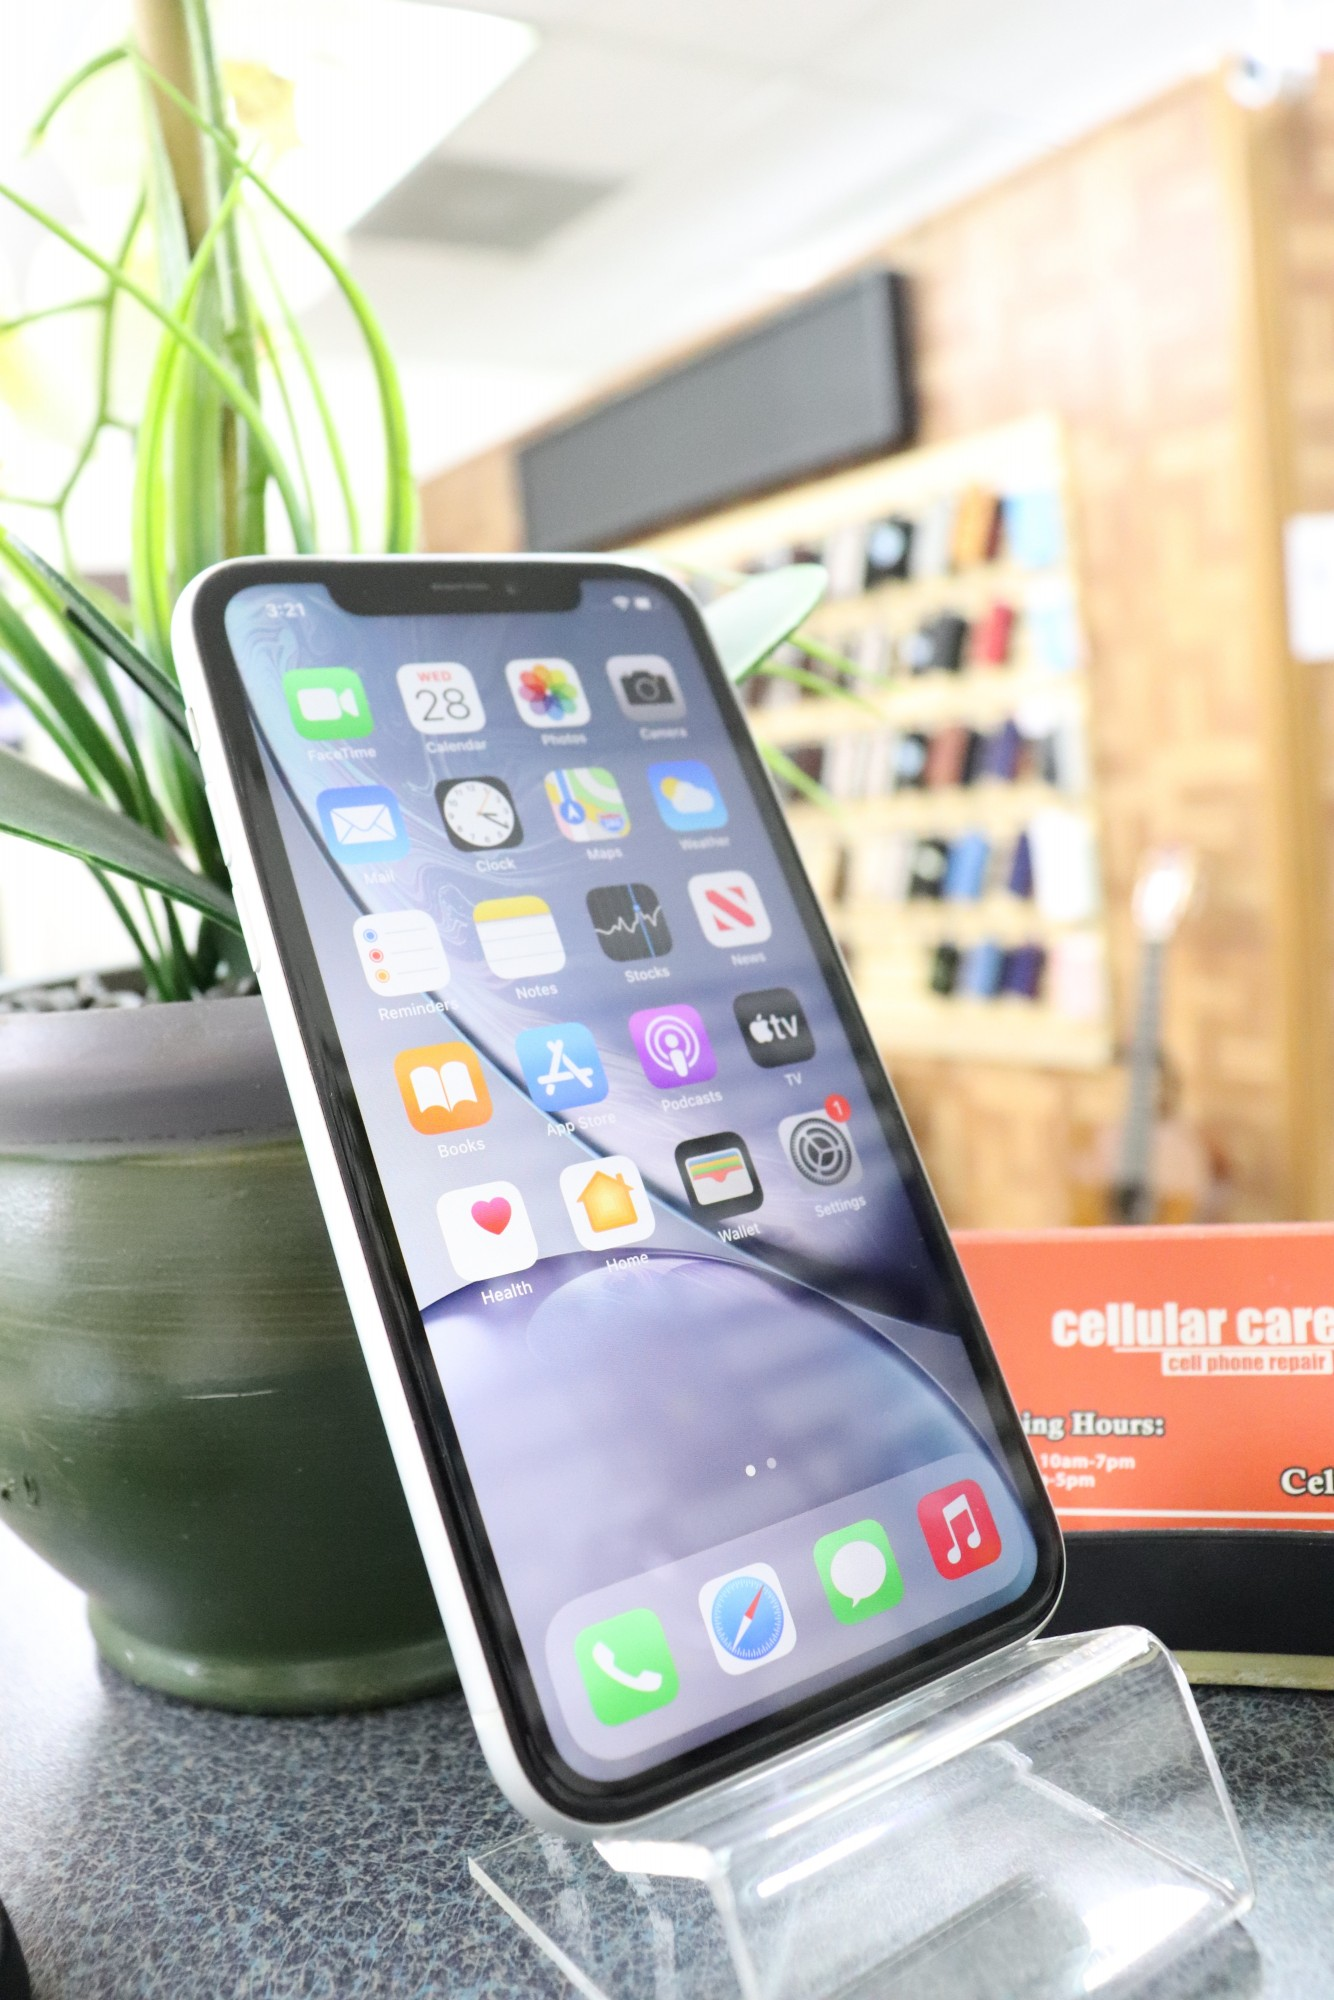 1652 – iPhone XR 64GB White Unlocked $320 – Store Pick Up Address: Cellular Care 300 N Coit Rd #157 Richardson TX, 75080 Mon-Sat: 11Am to 7Pm Sun: 12 to 5Pm *About this item: -Condition: 8.